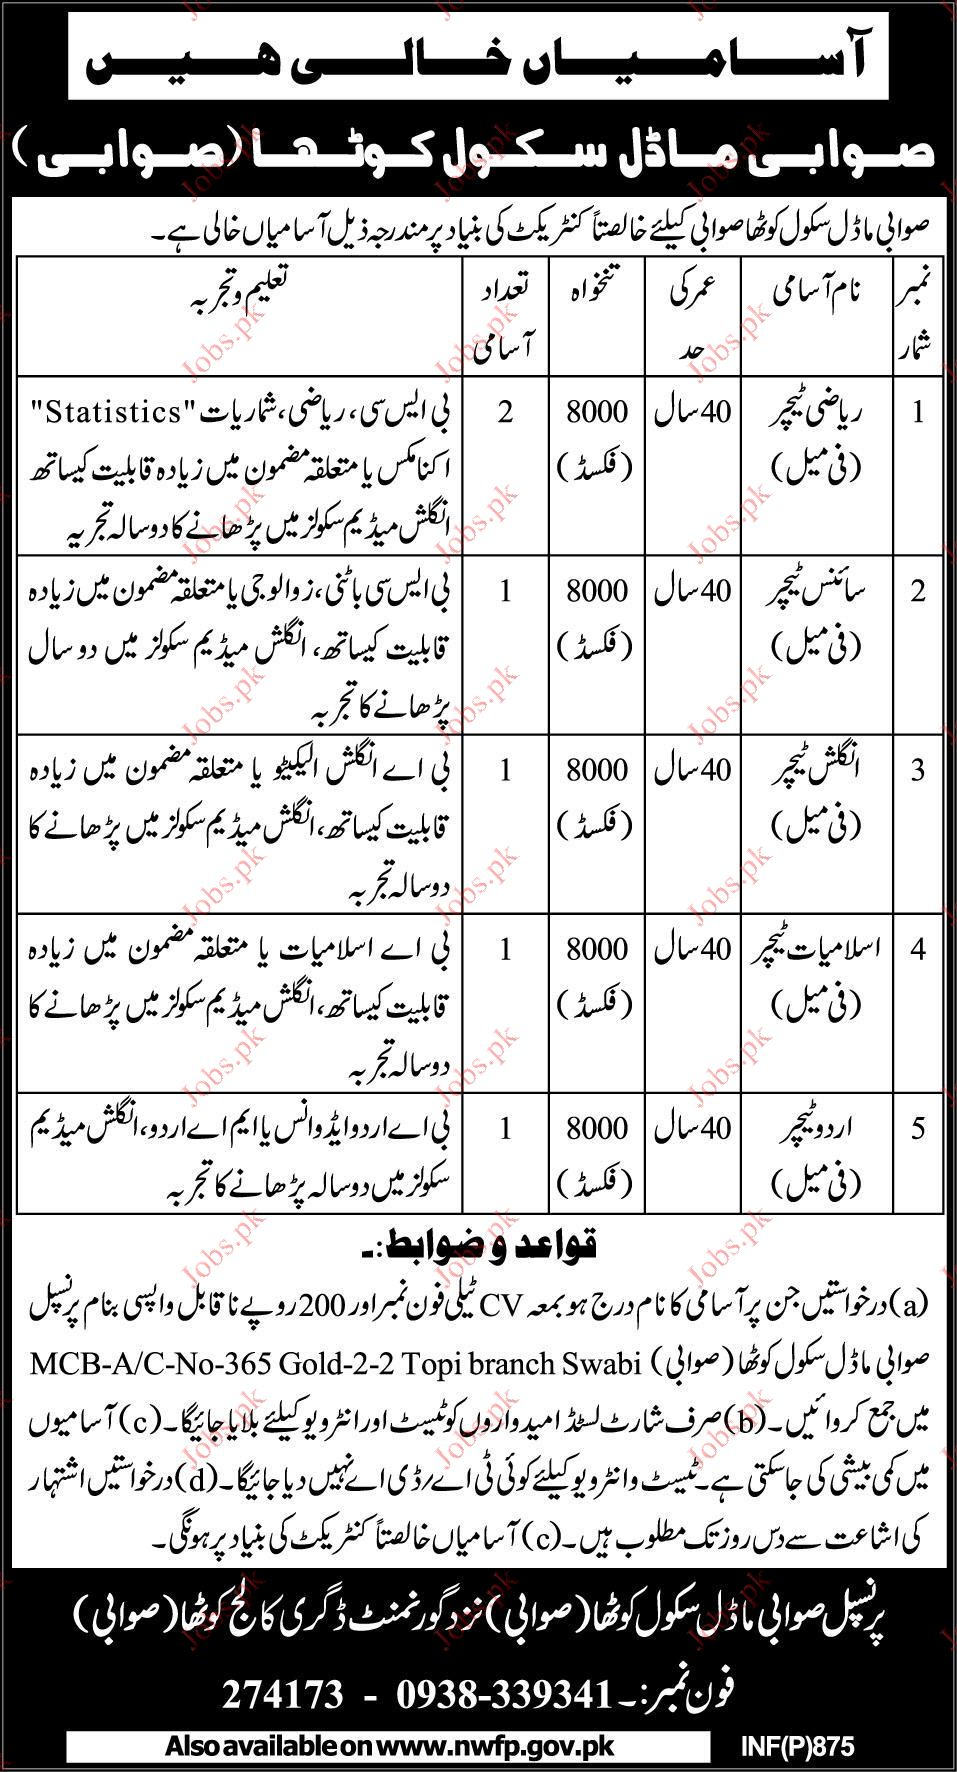 Sawabi Model School Kotha Job Opportunities